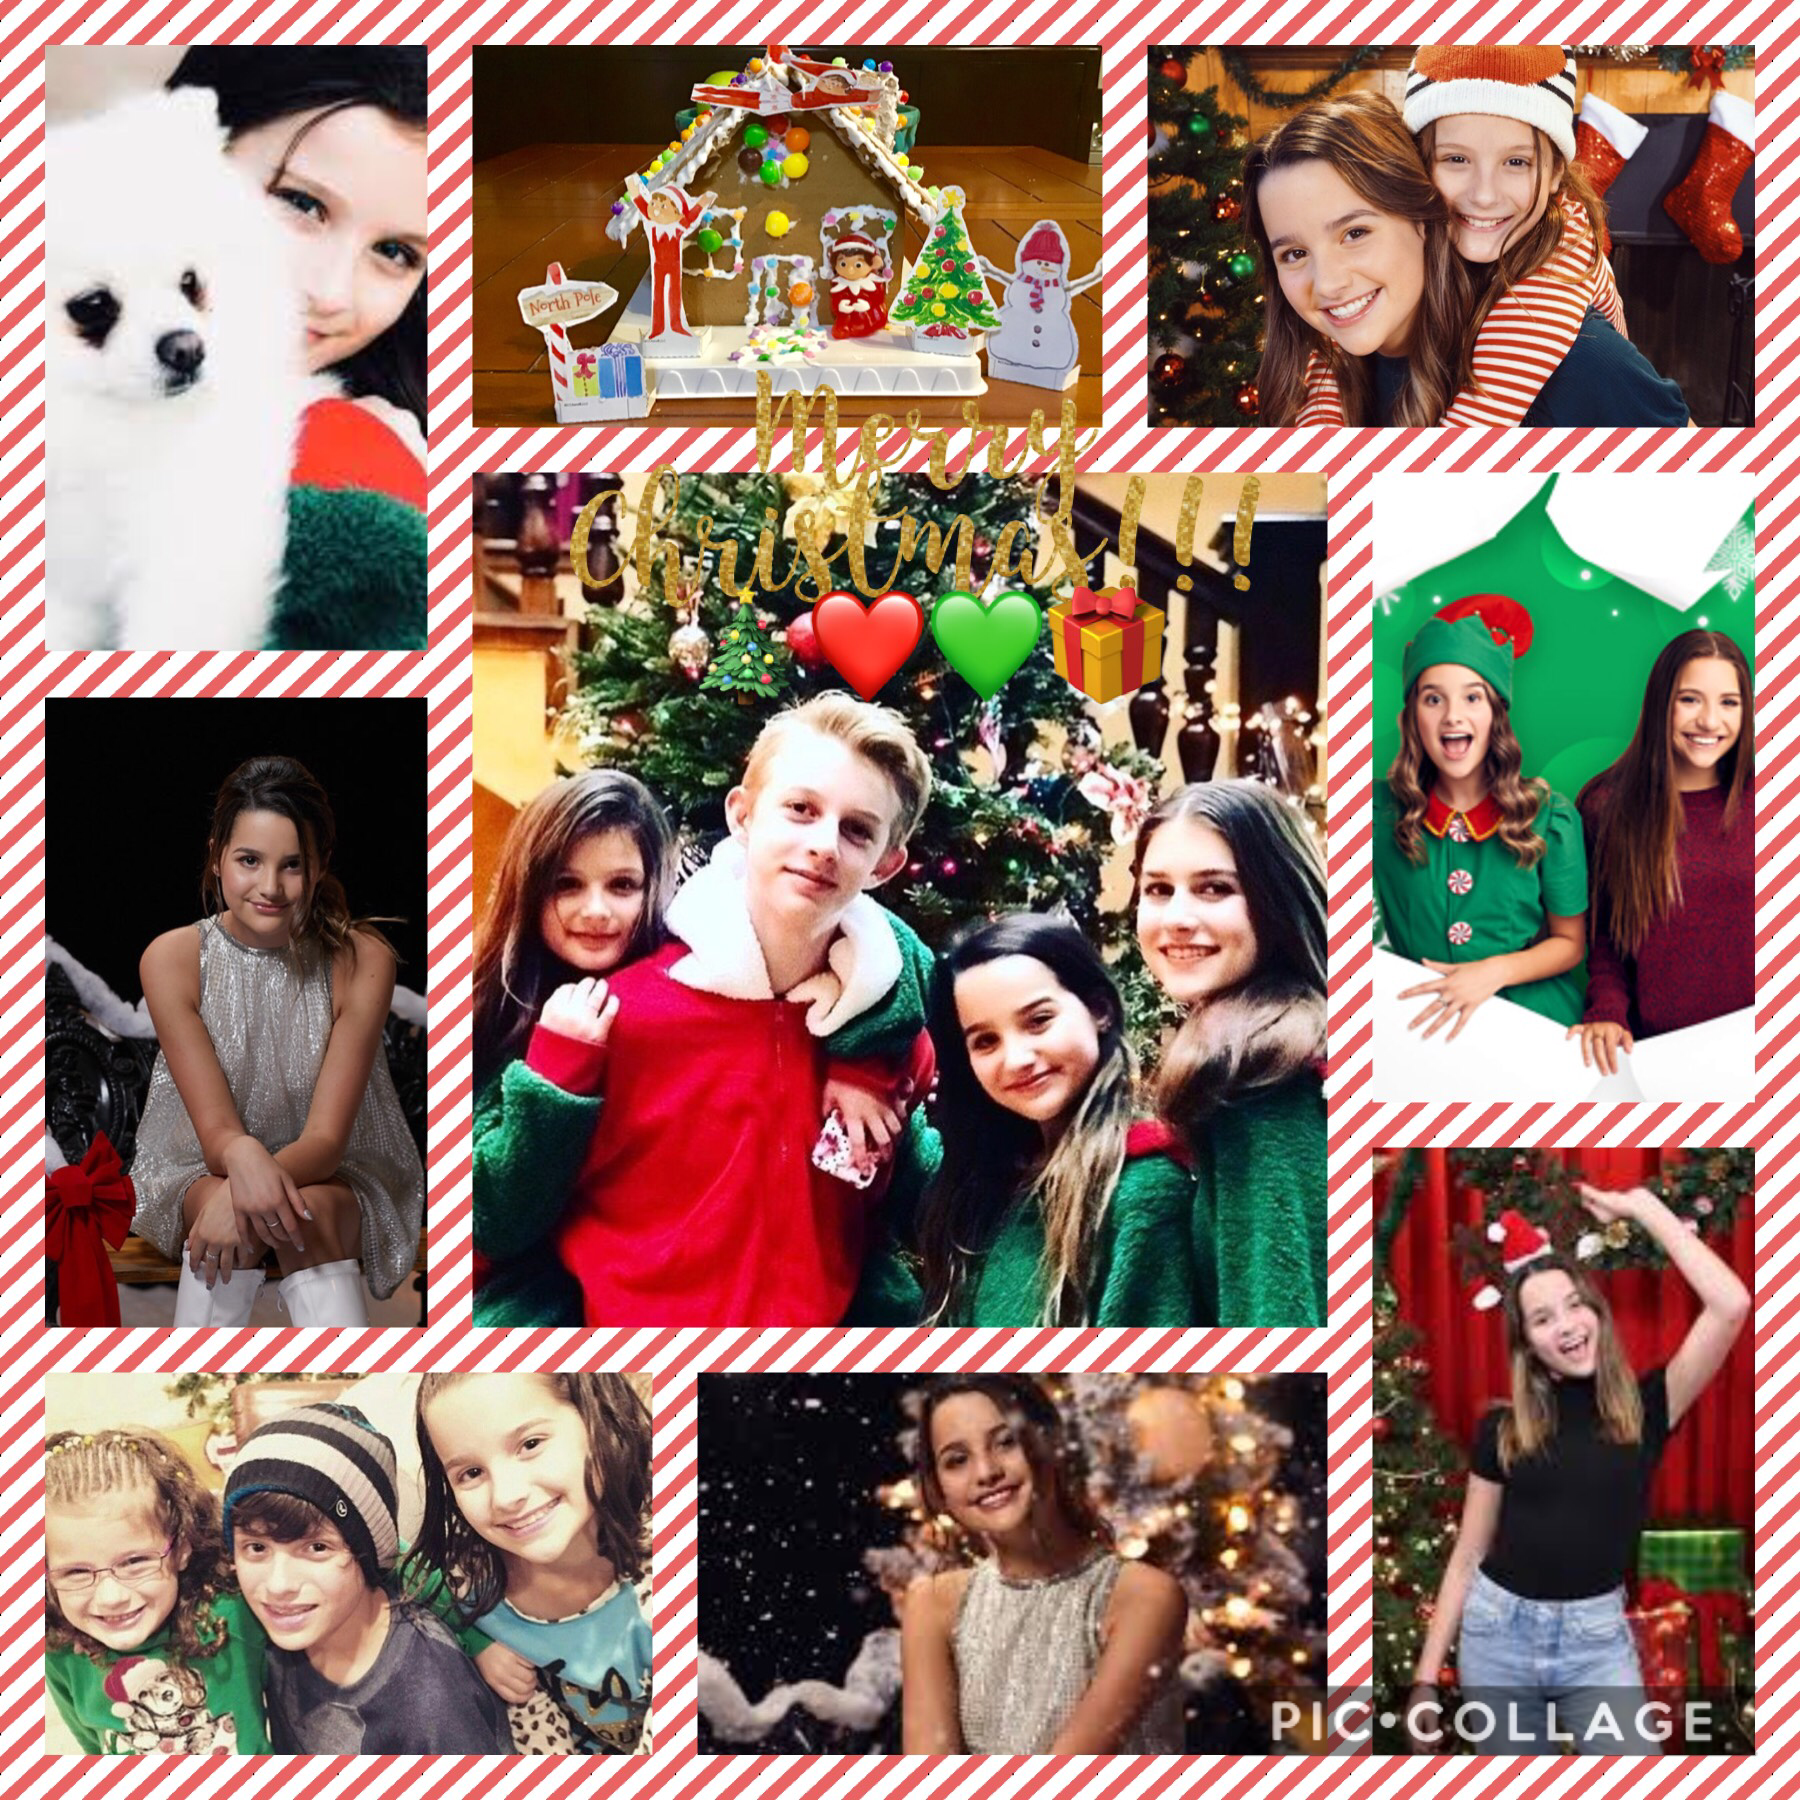 💚🎄Tap🎄💚 MERRY CHRISTMAS EVERYONE!!!!😆🎄🎁❤️💚❤️💚😘 Sry I'm a little late 😅 Thx 4 everything this year! ❤️💚 Also, can we just take a moment to congratulate ANNIE❤️👑 She's accomplished so much this year, she's amazing...ILY SM U ANNIE!!!❤️💚🎄👑🎁😍🥰😇 New Years is n